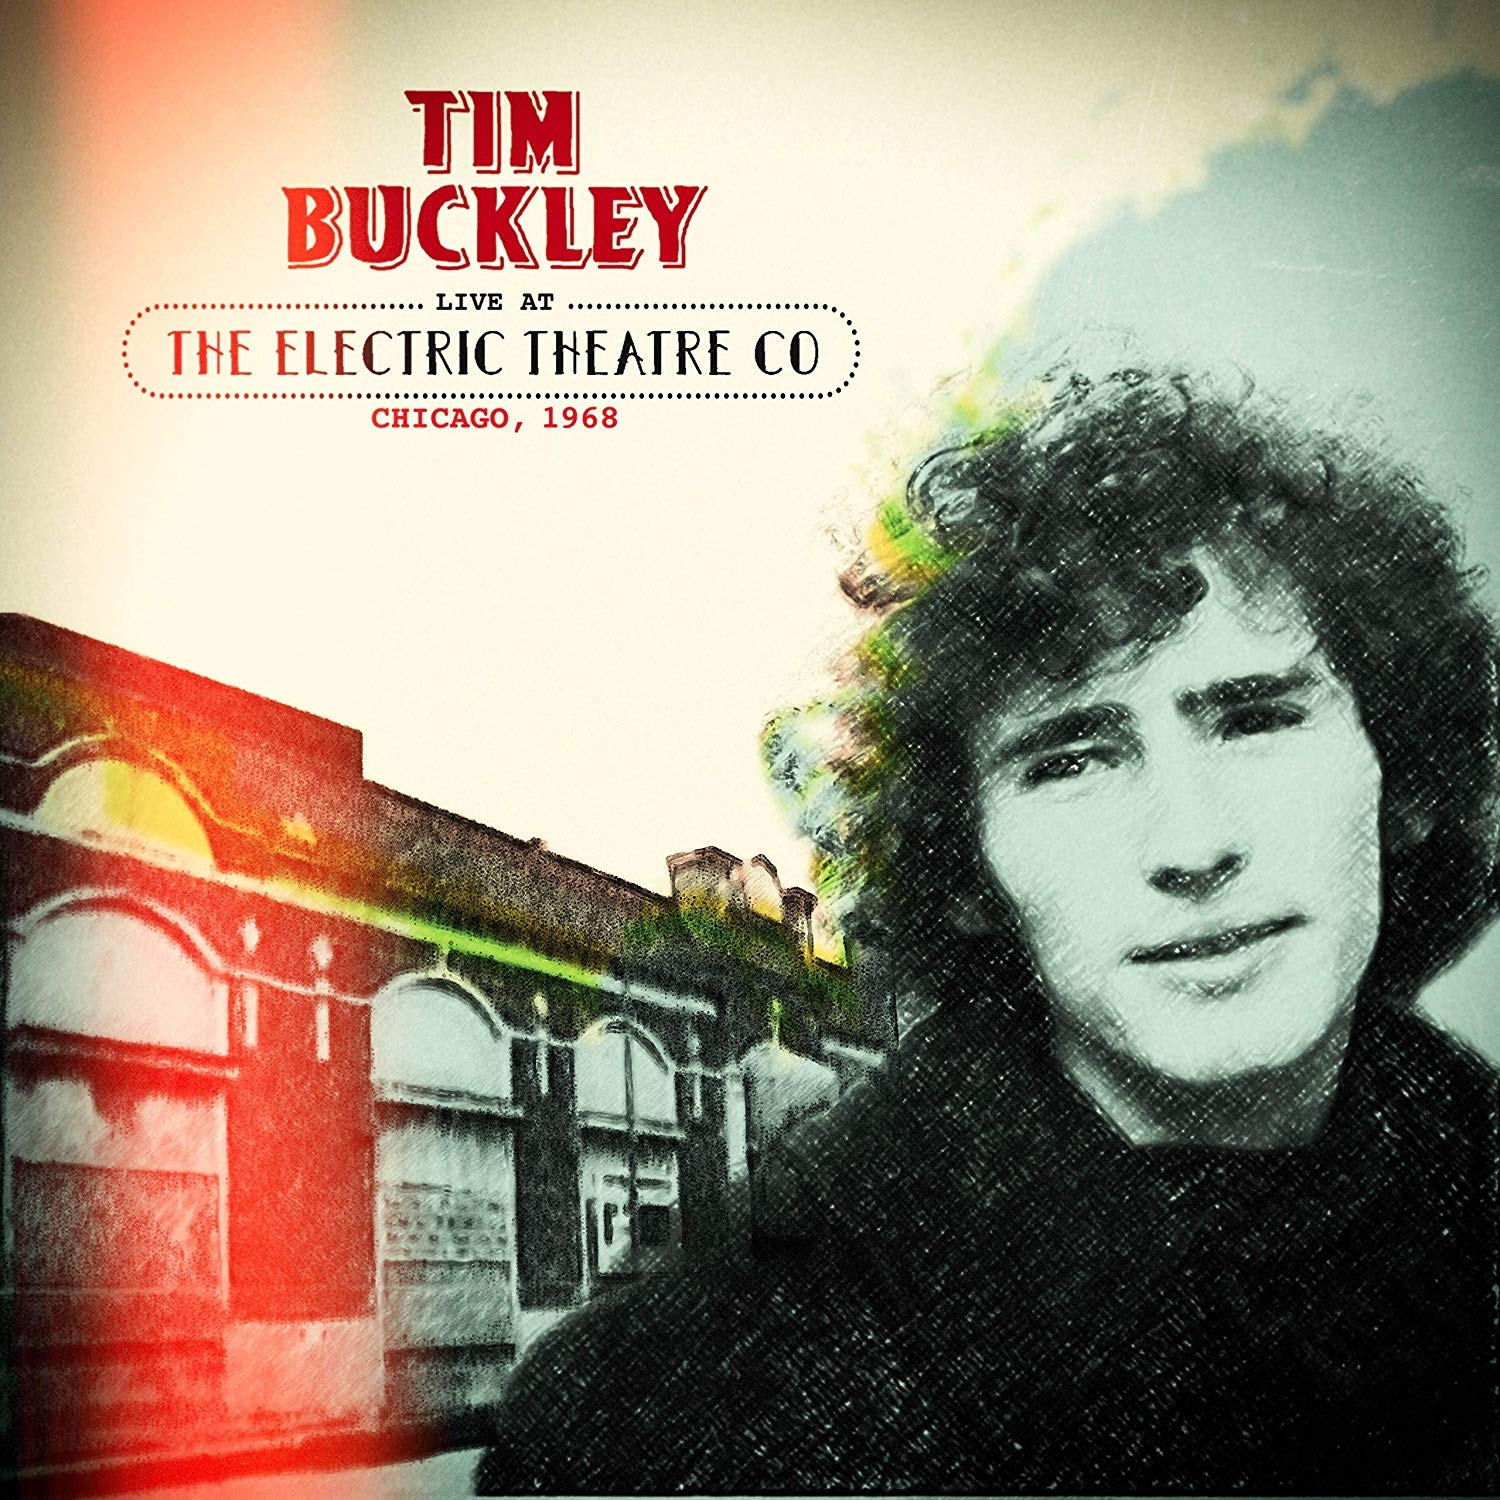 Live At The Electric Theater Co. Chicago, 1968